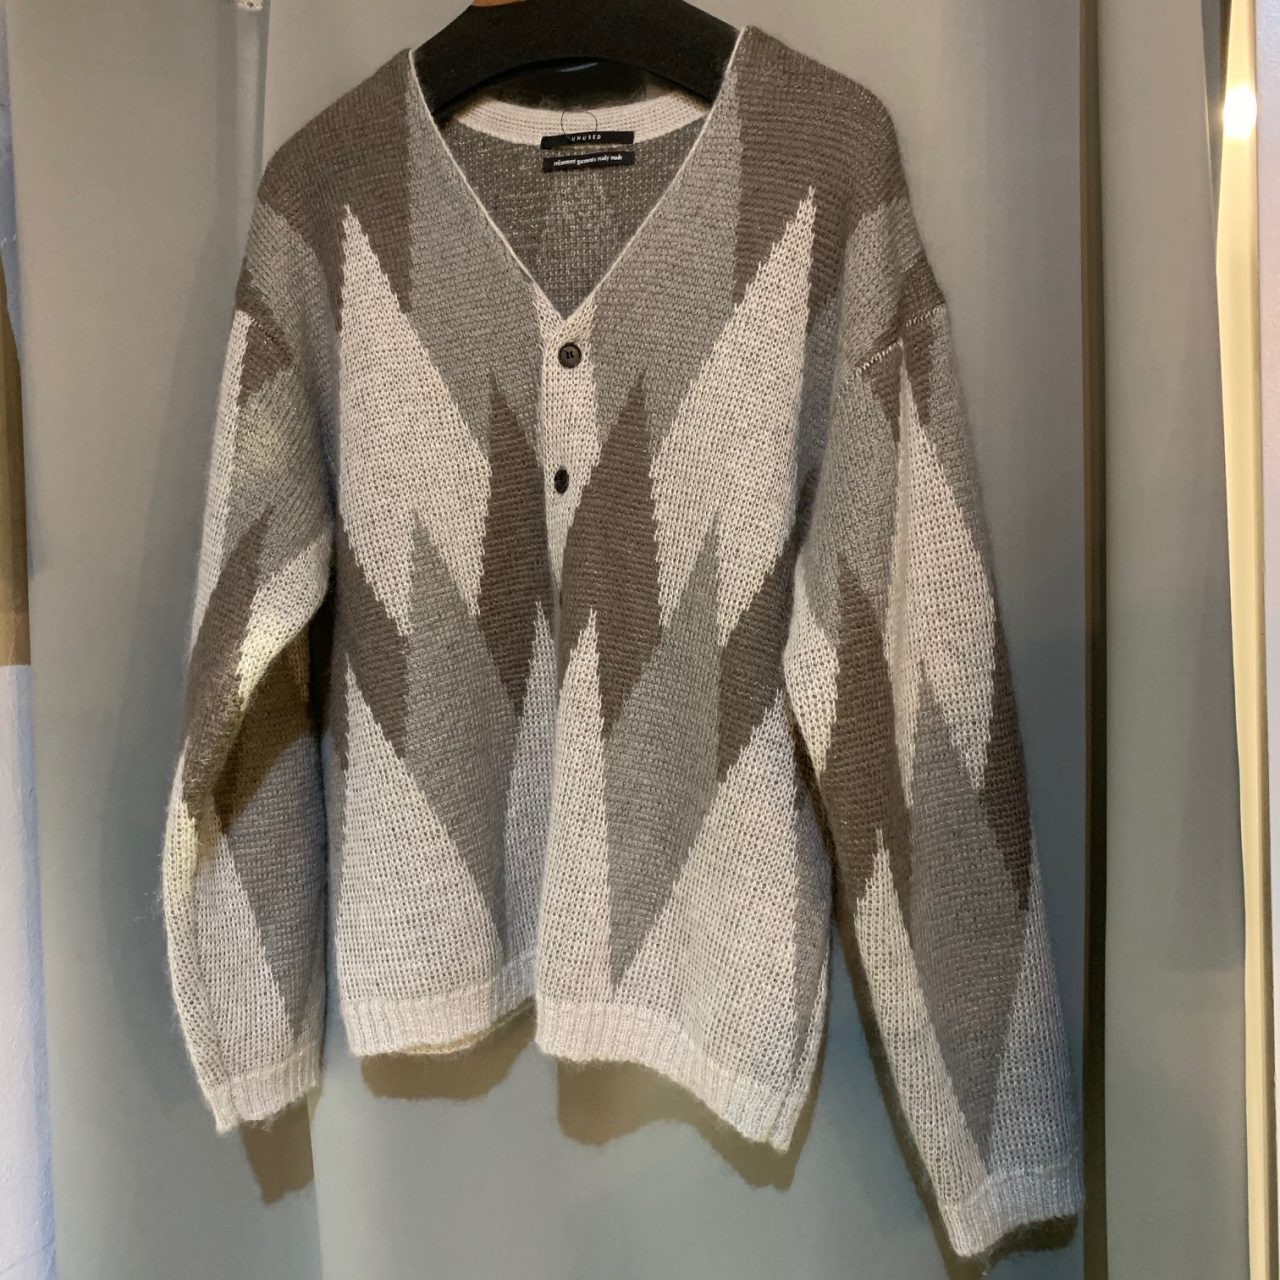 UNUSED 19AW 5G ARGYLE KNIT CARDIGAN